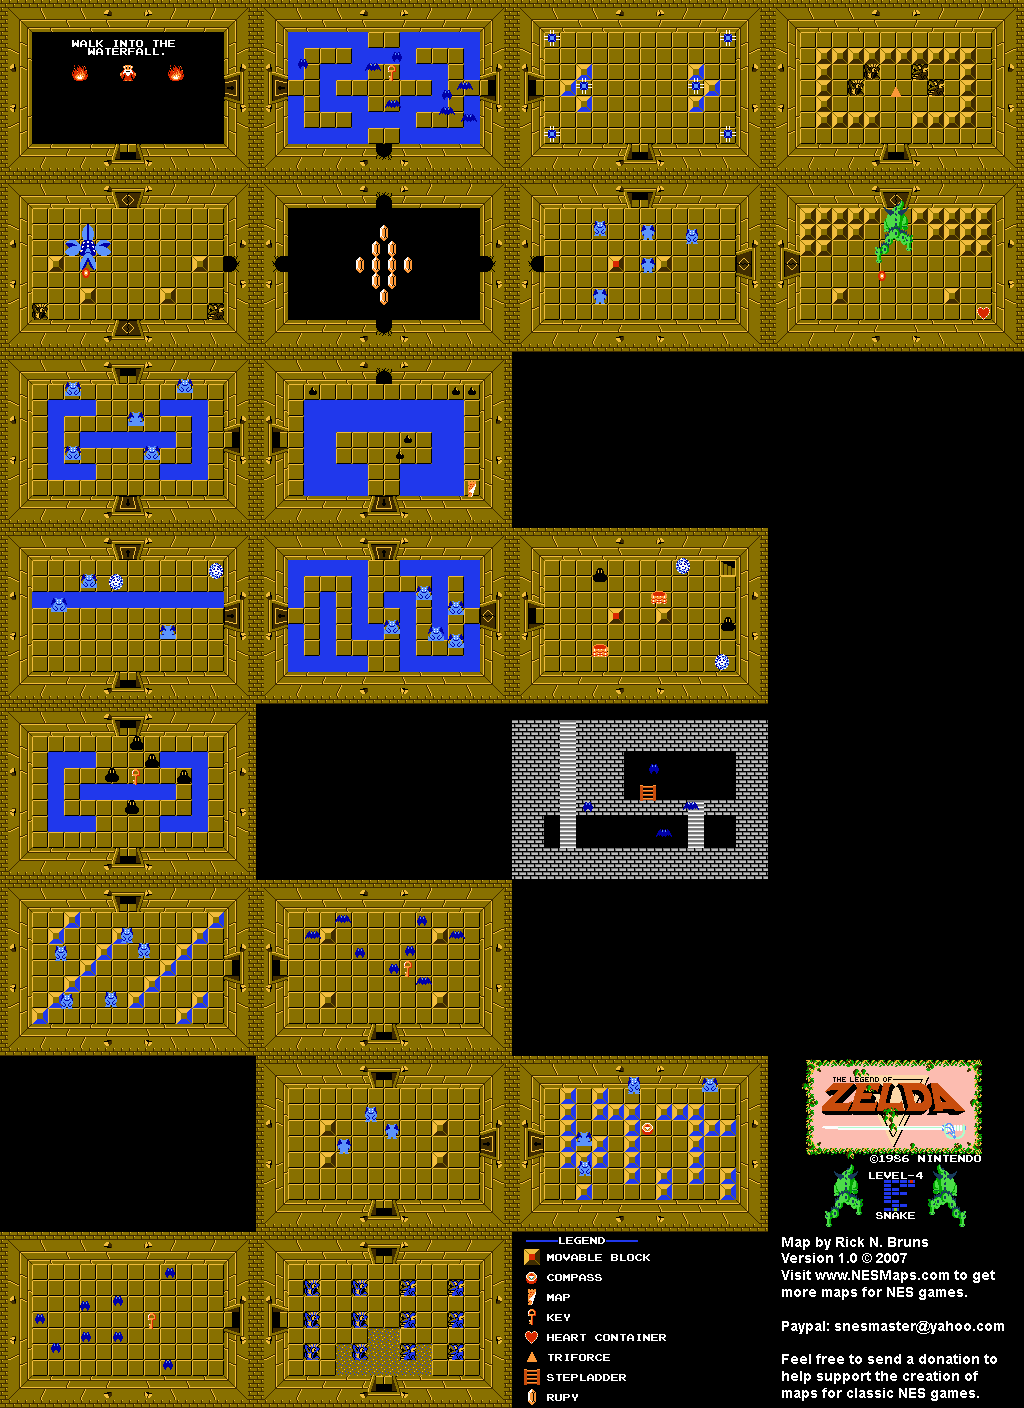 Legend Of Zelda Secrets Map : legend, zelda, secrets, Legend, Zelda, Galaxy.com